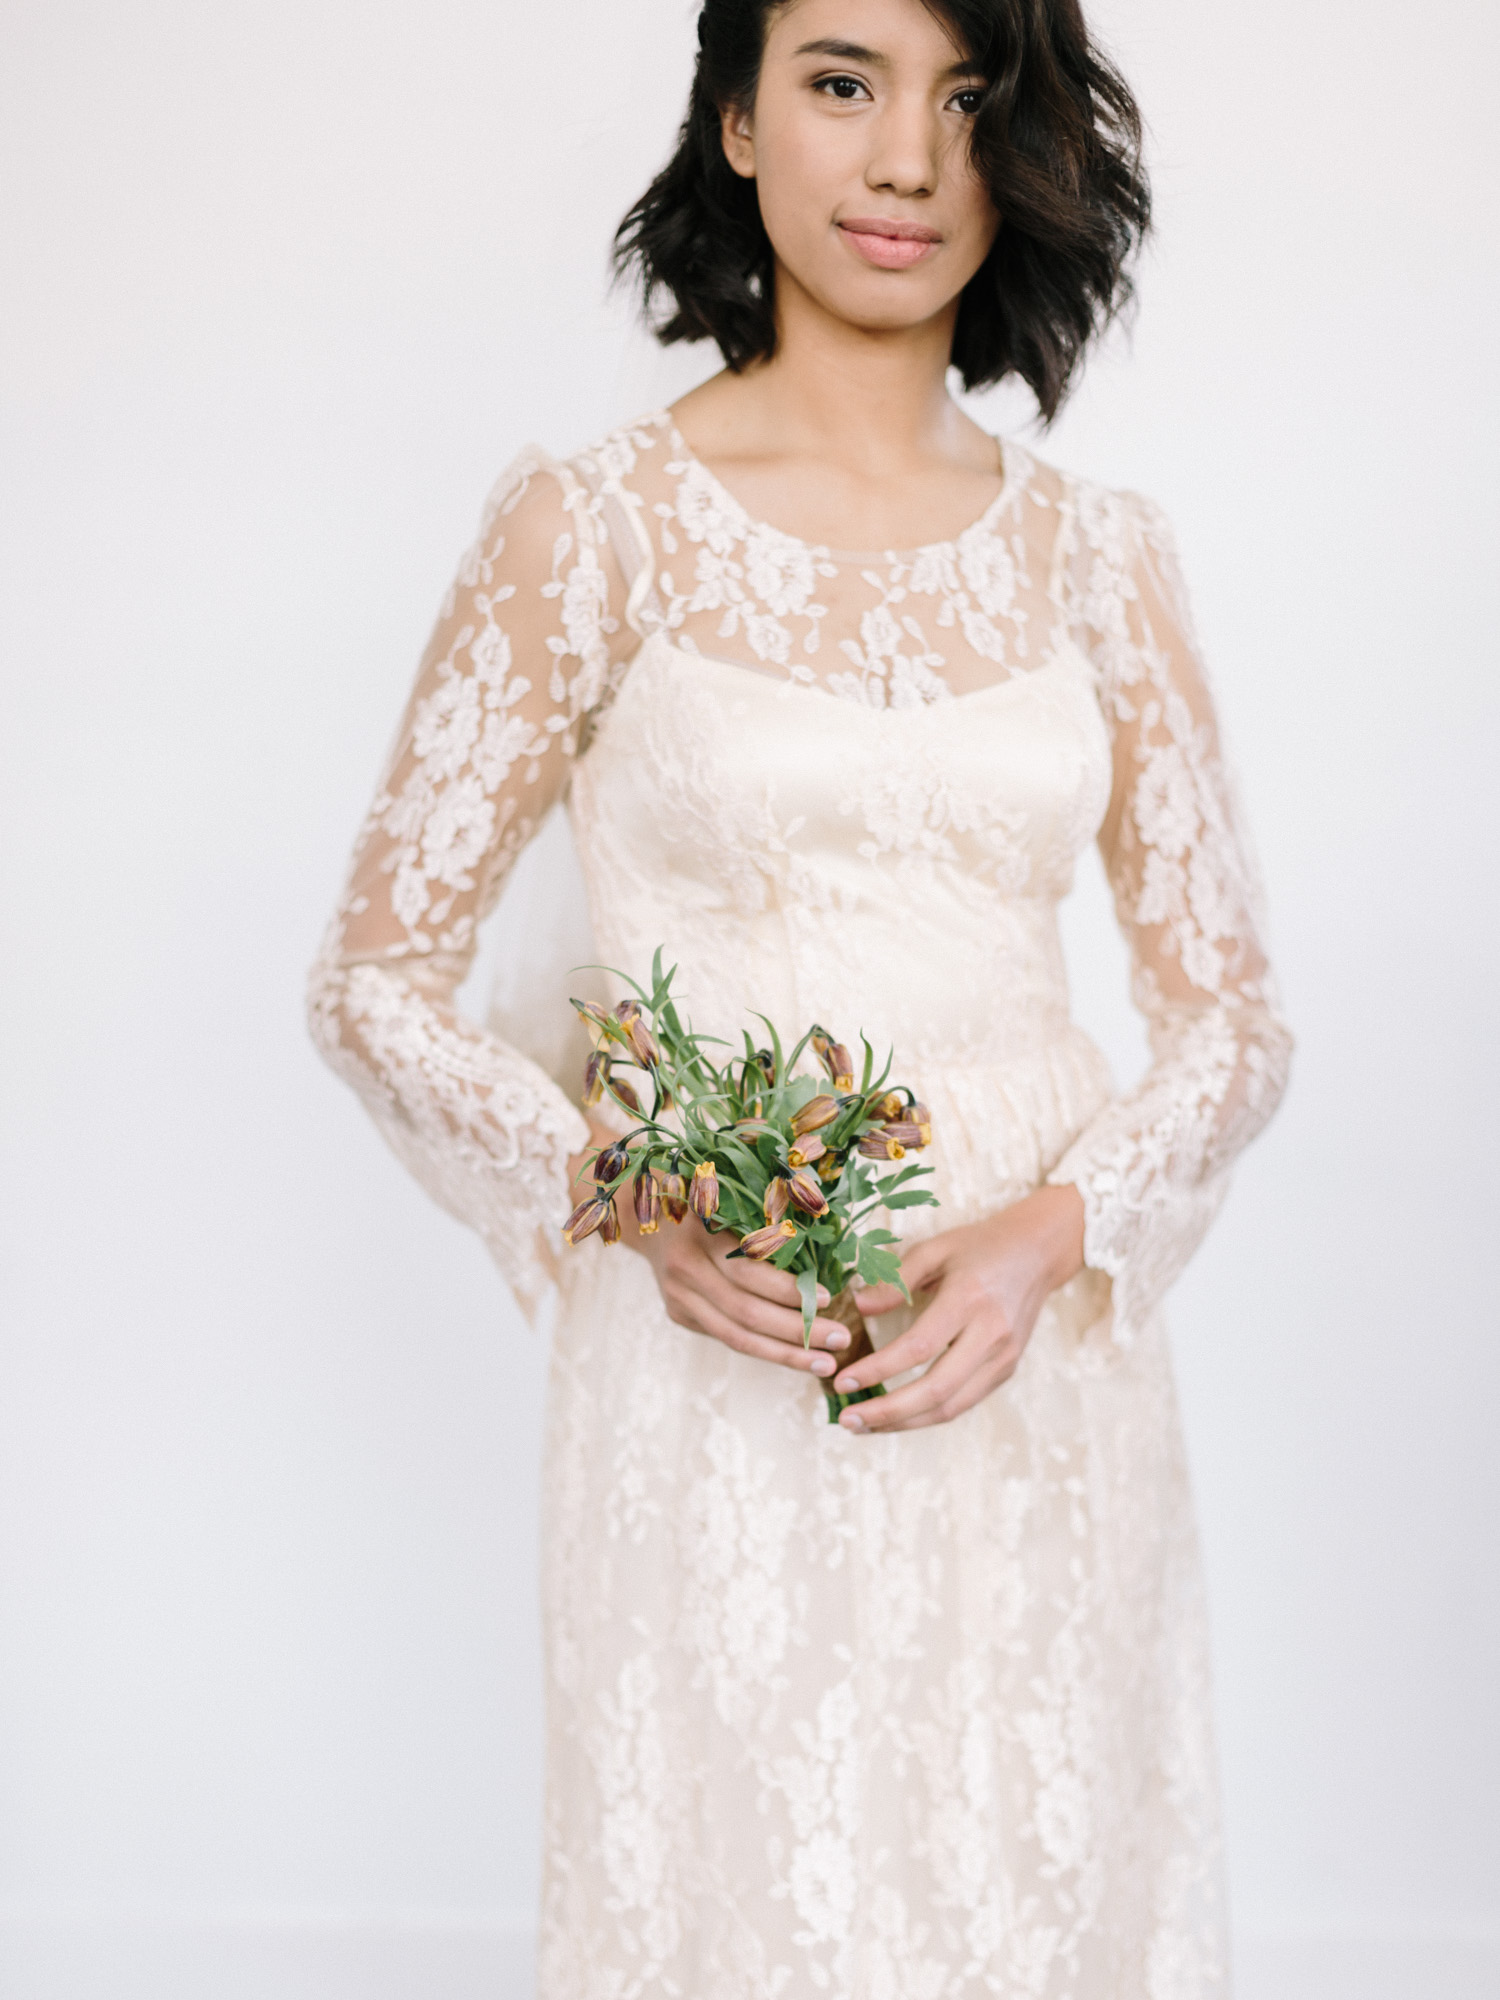 a natural bride in a lace gown holds a small bouquet